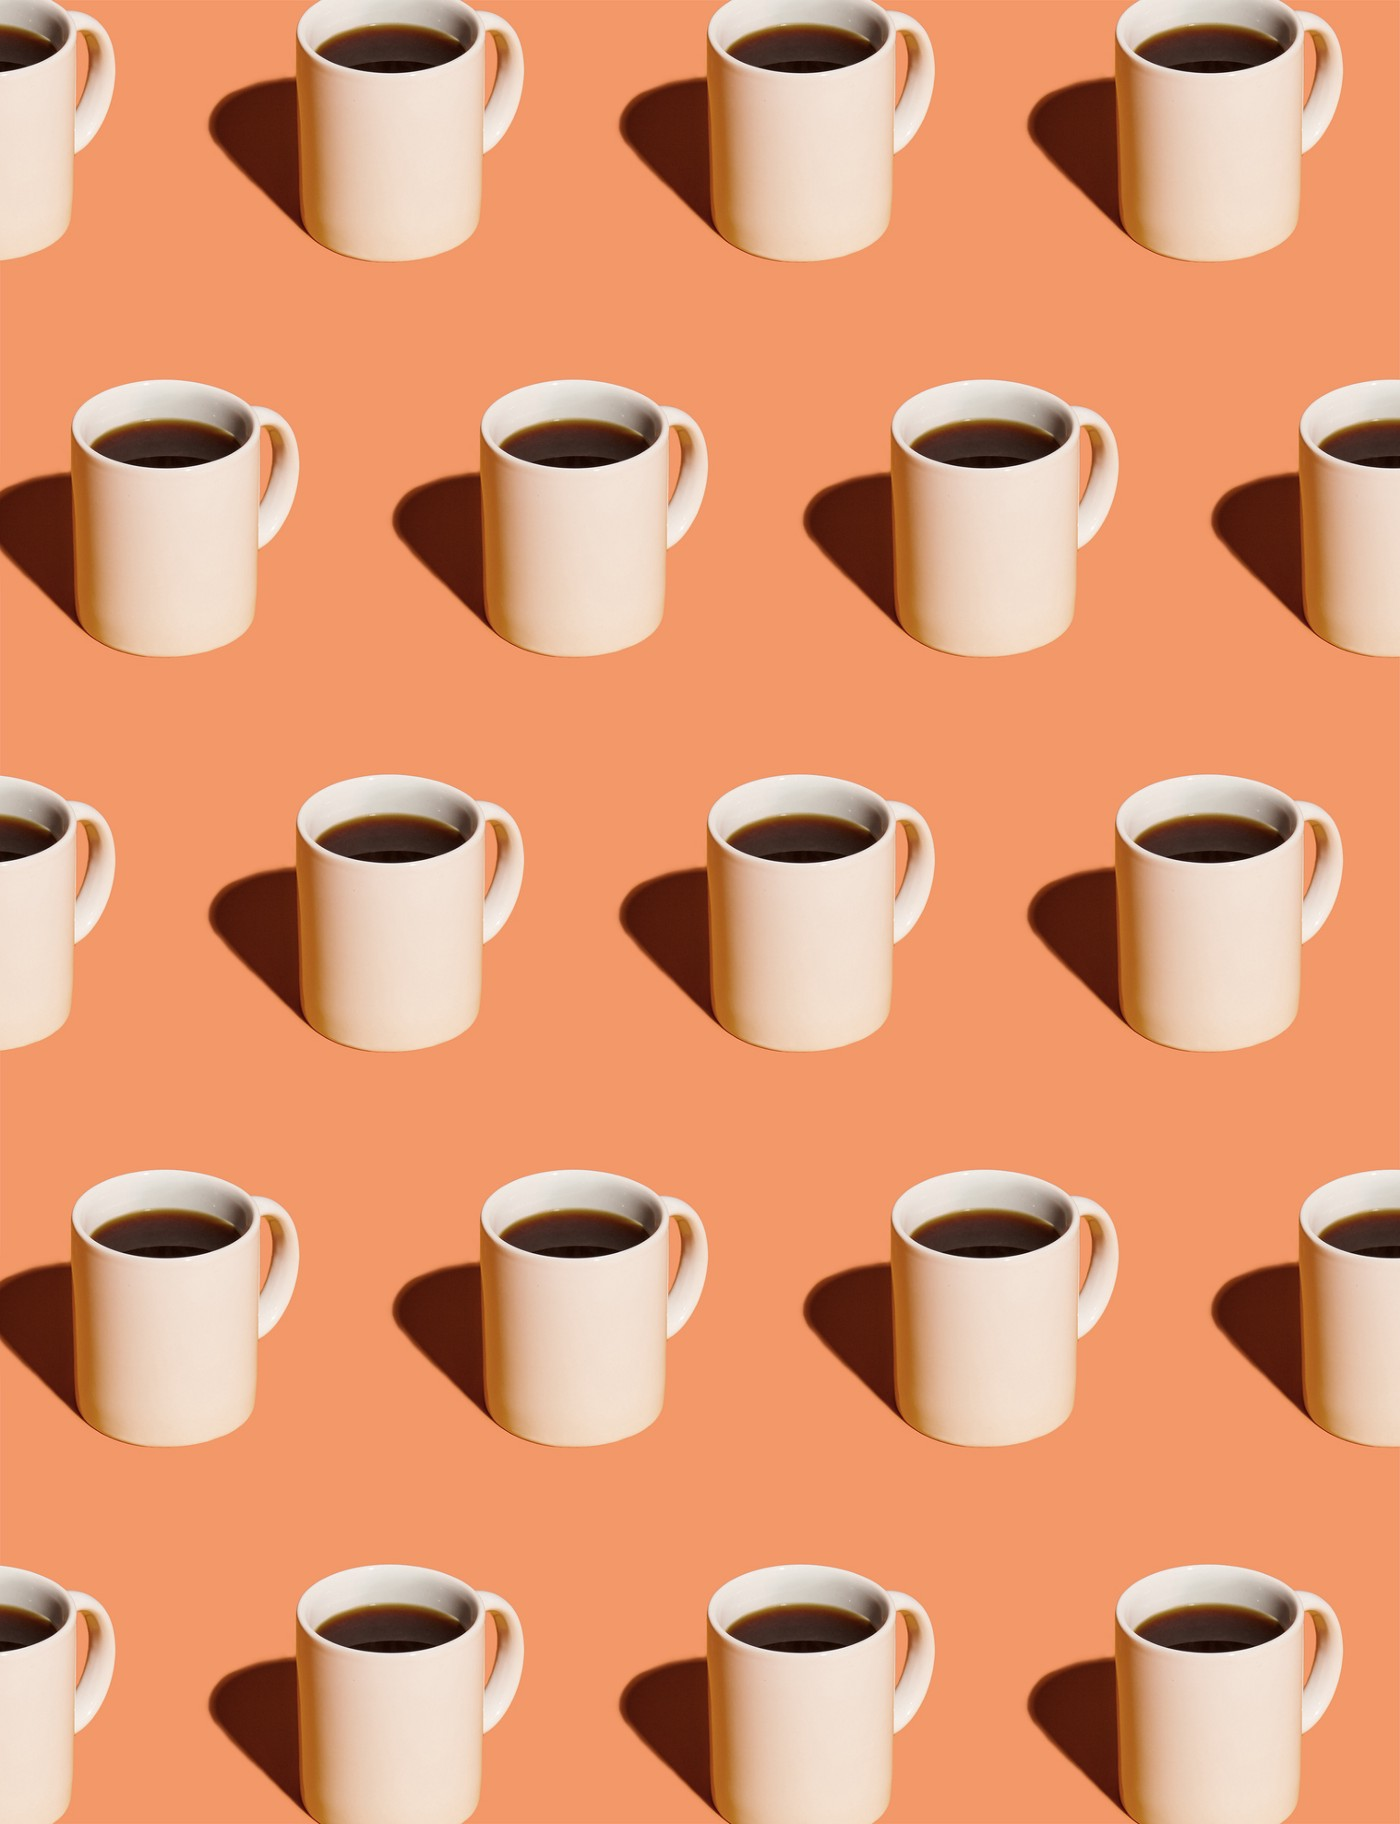 A photo of coffee cups lined up.